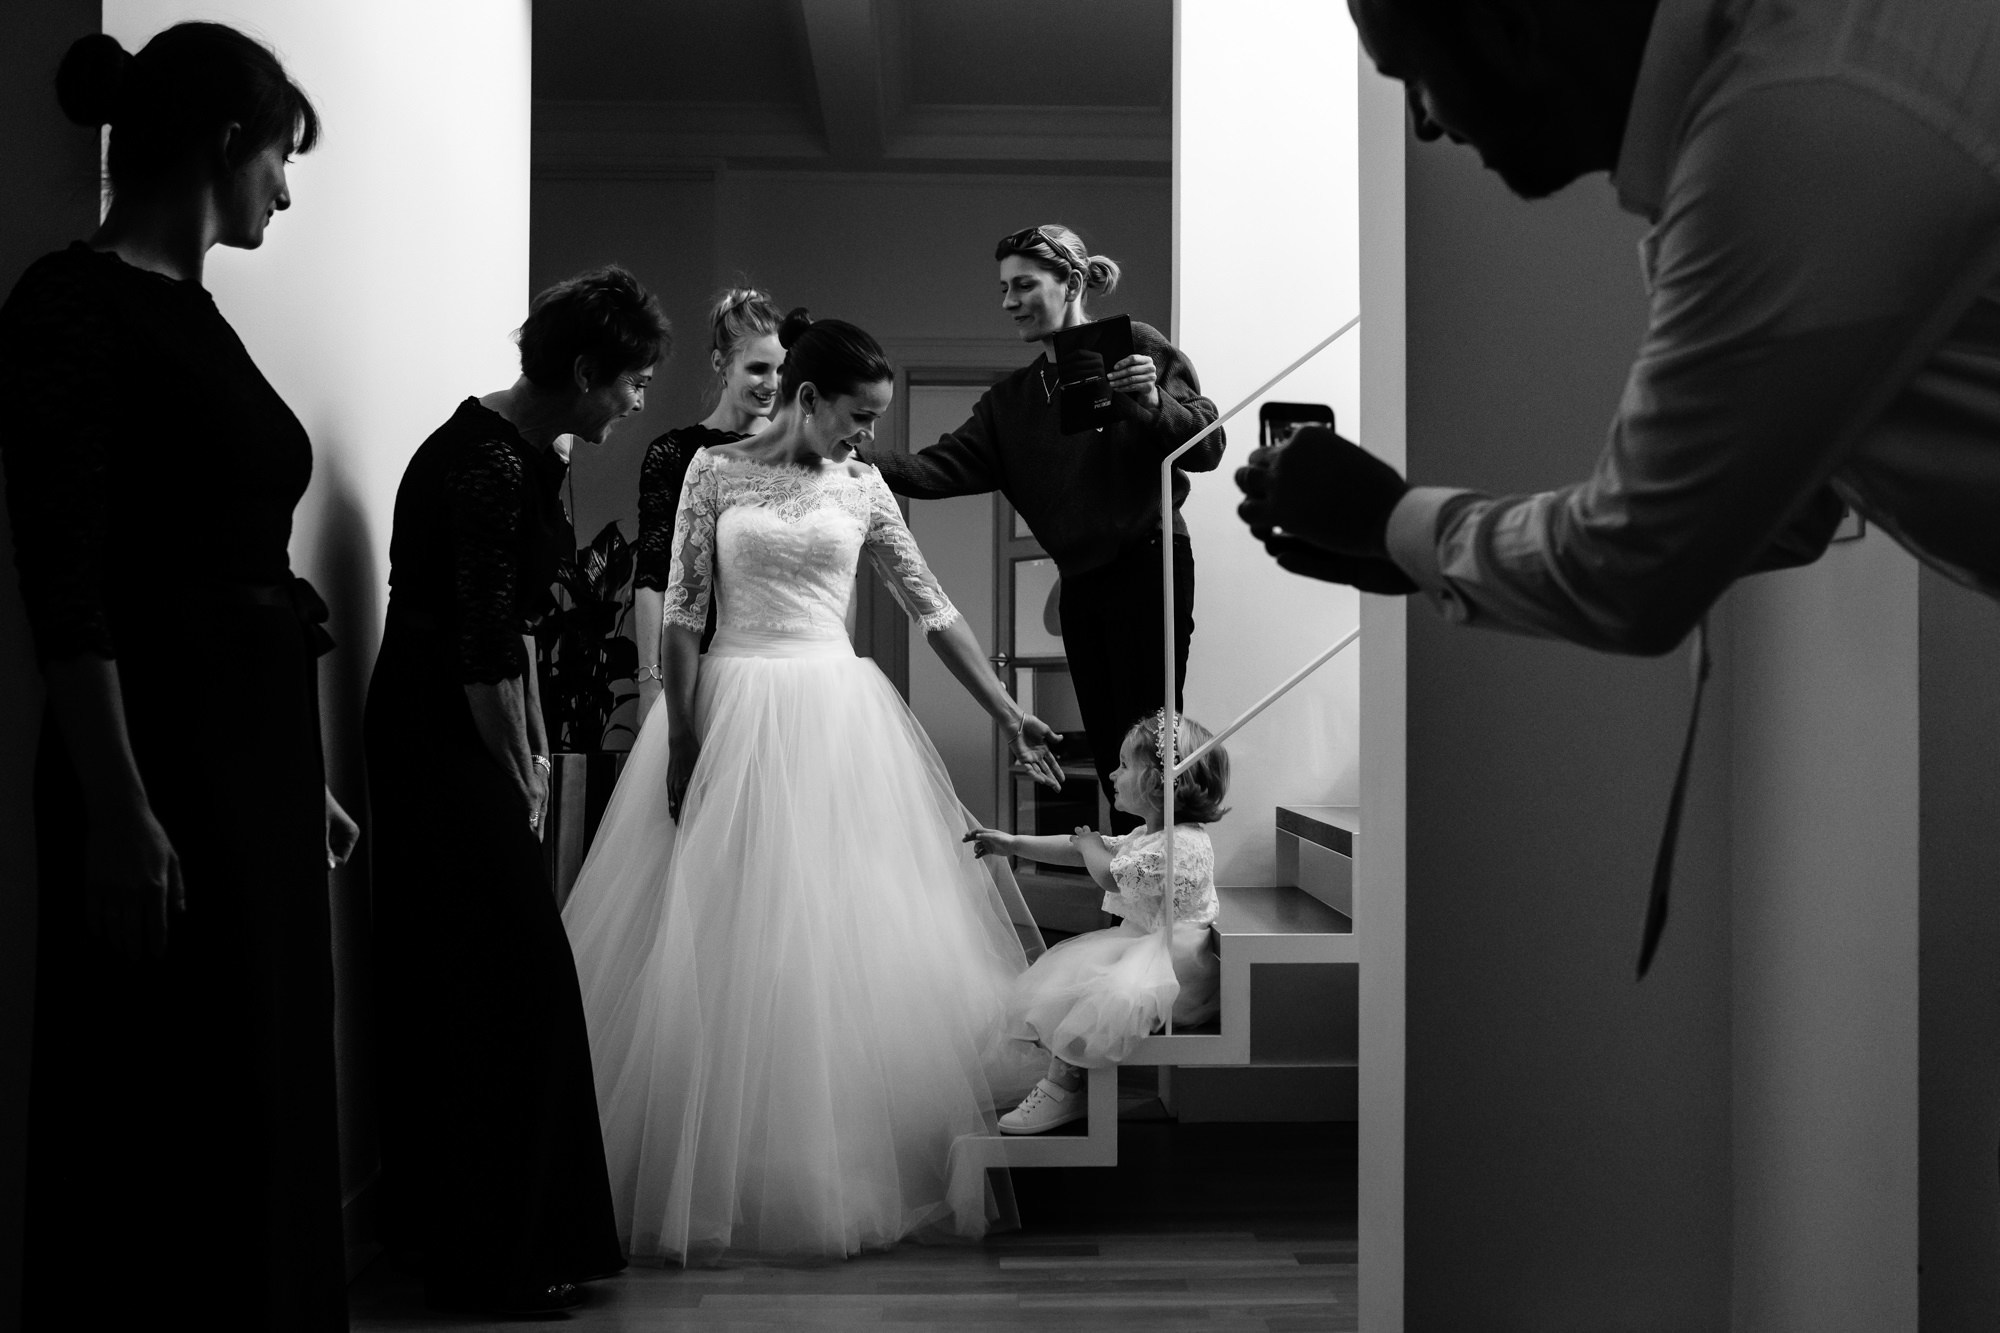 little girl reaches out to touch bride's dress Yves Schepers Belgium wedding photographers